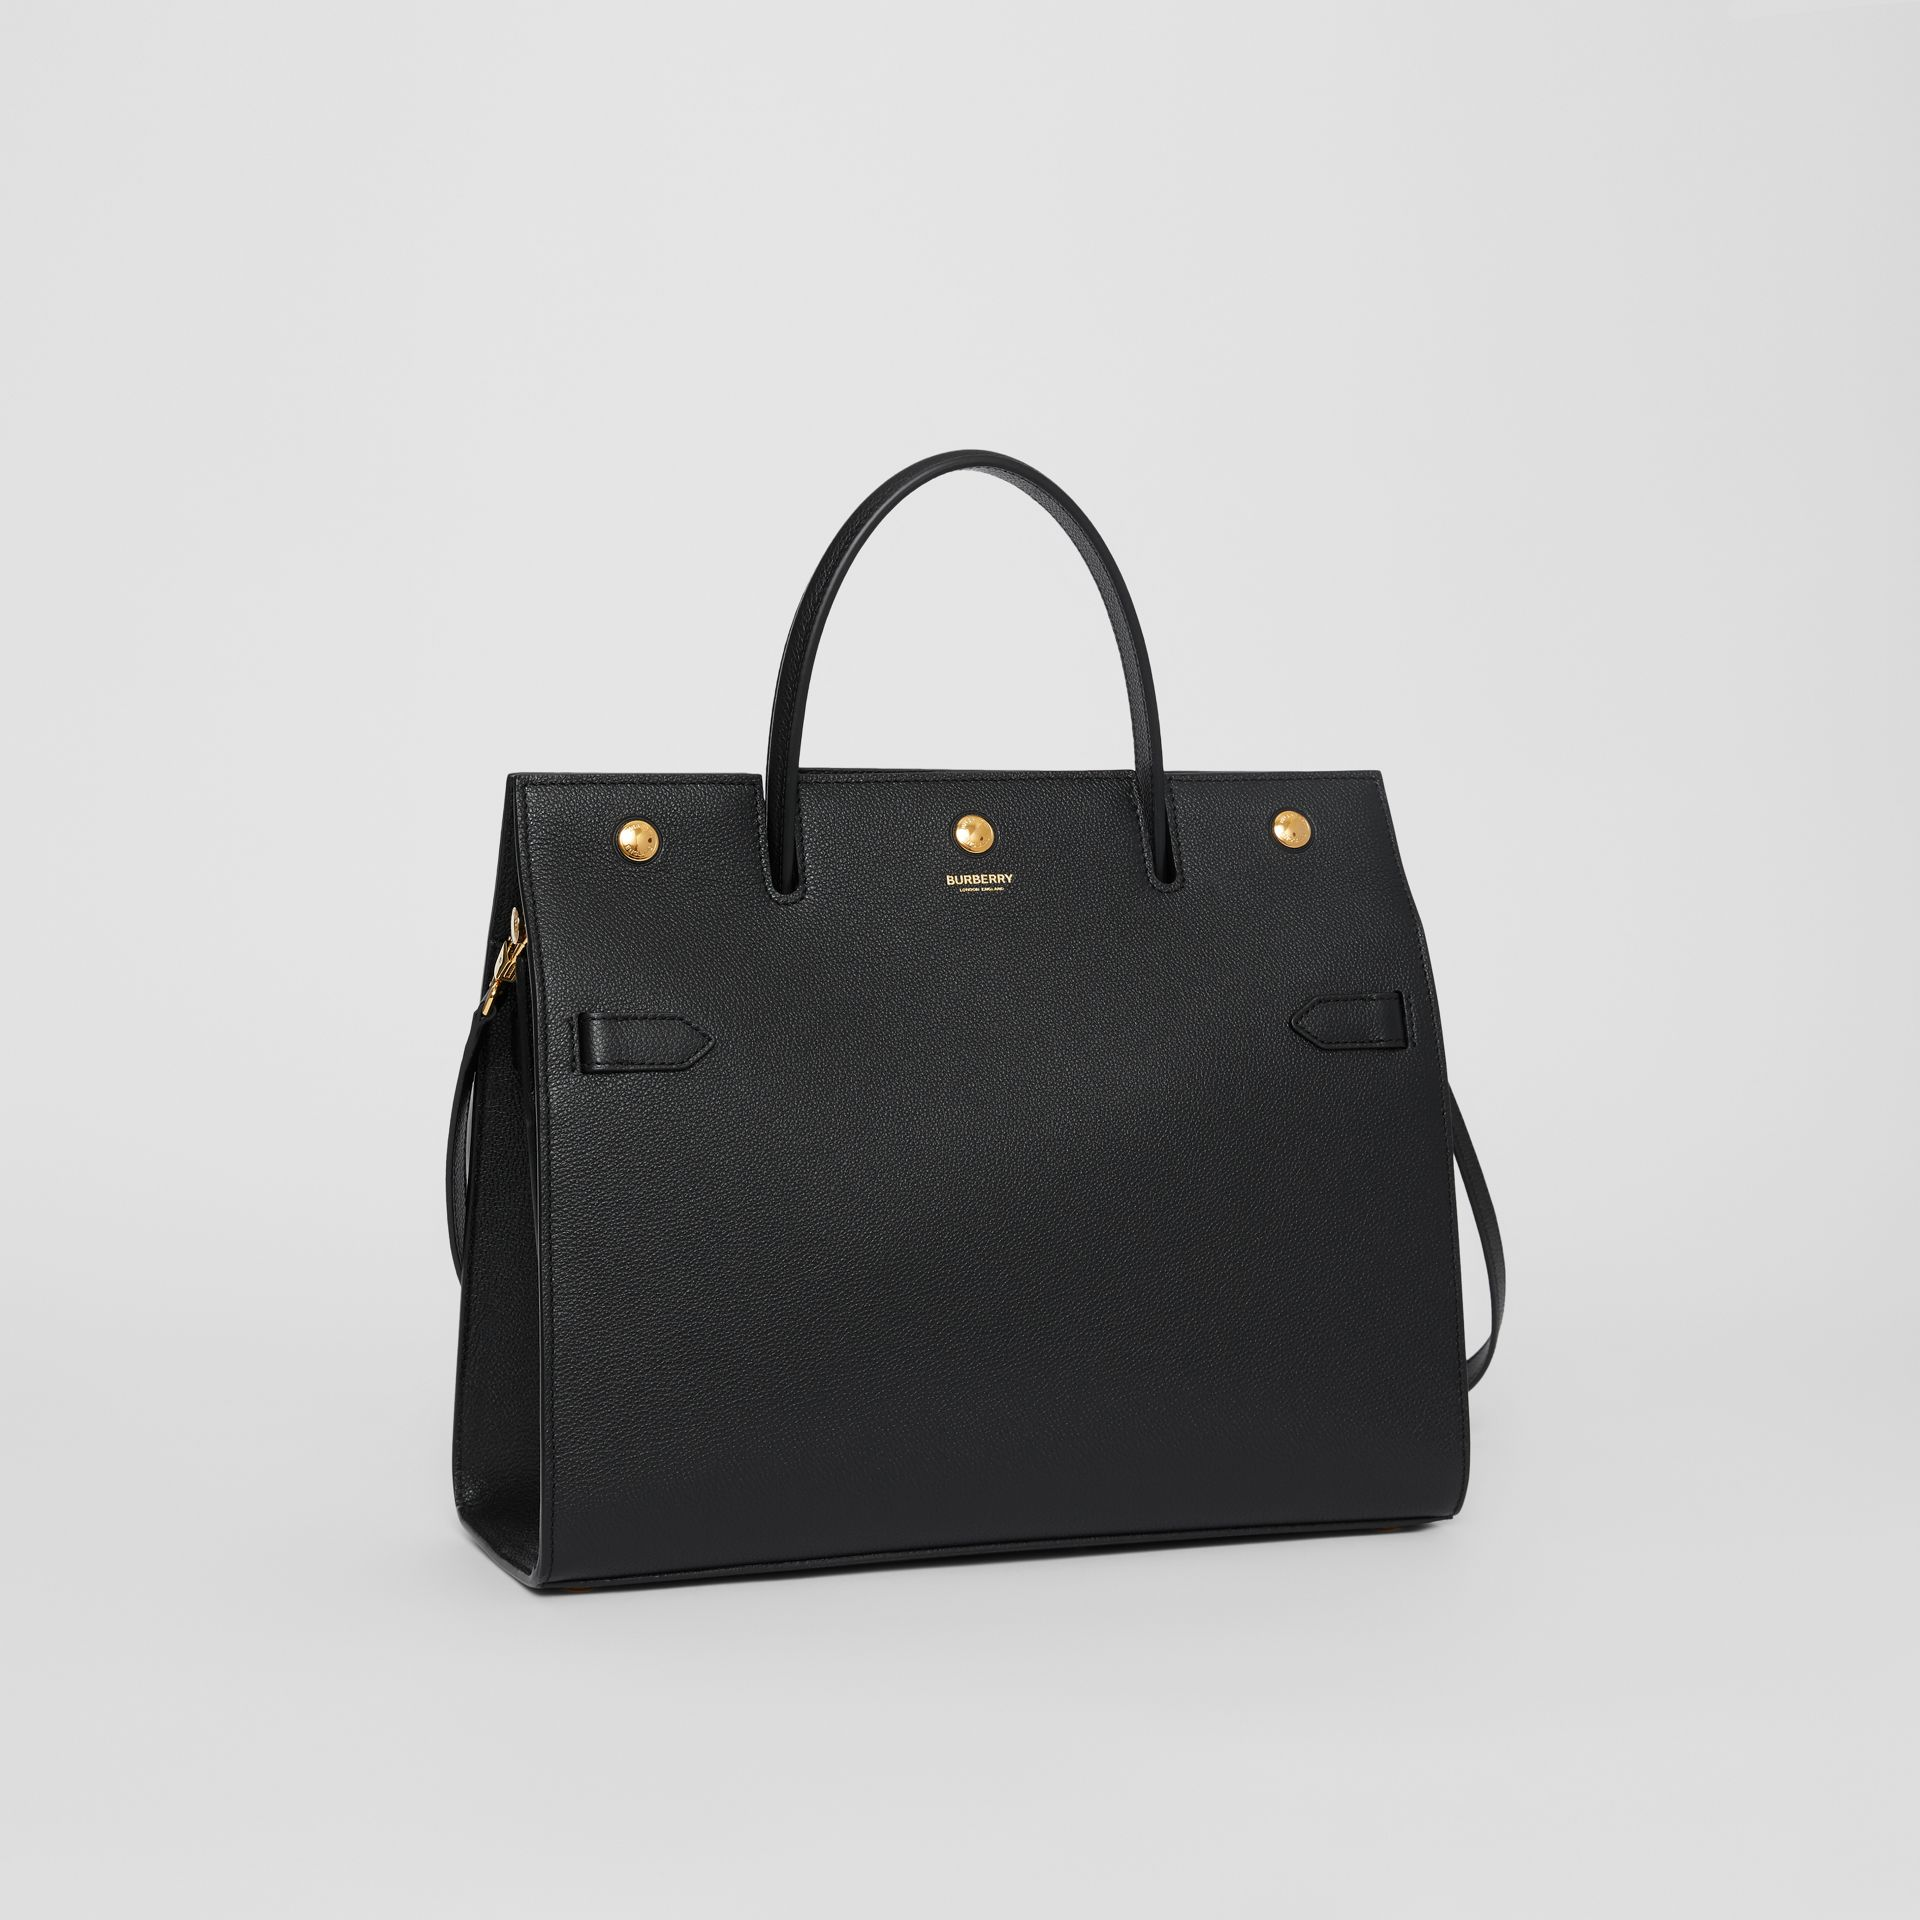 Medium Leather Title Bag in Black - Women | Burberry United Kingdom - gallery image 6